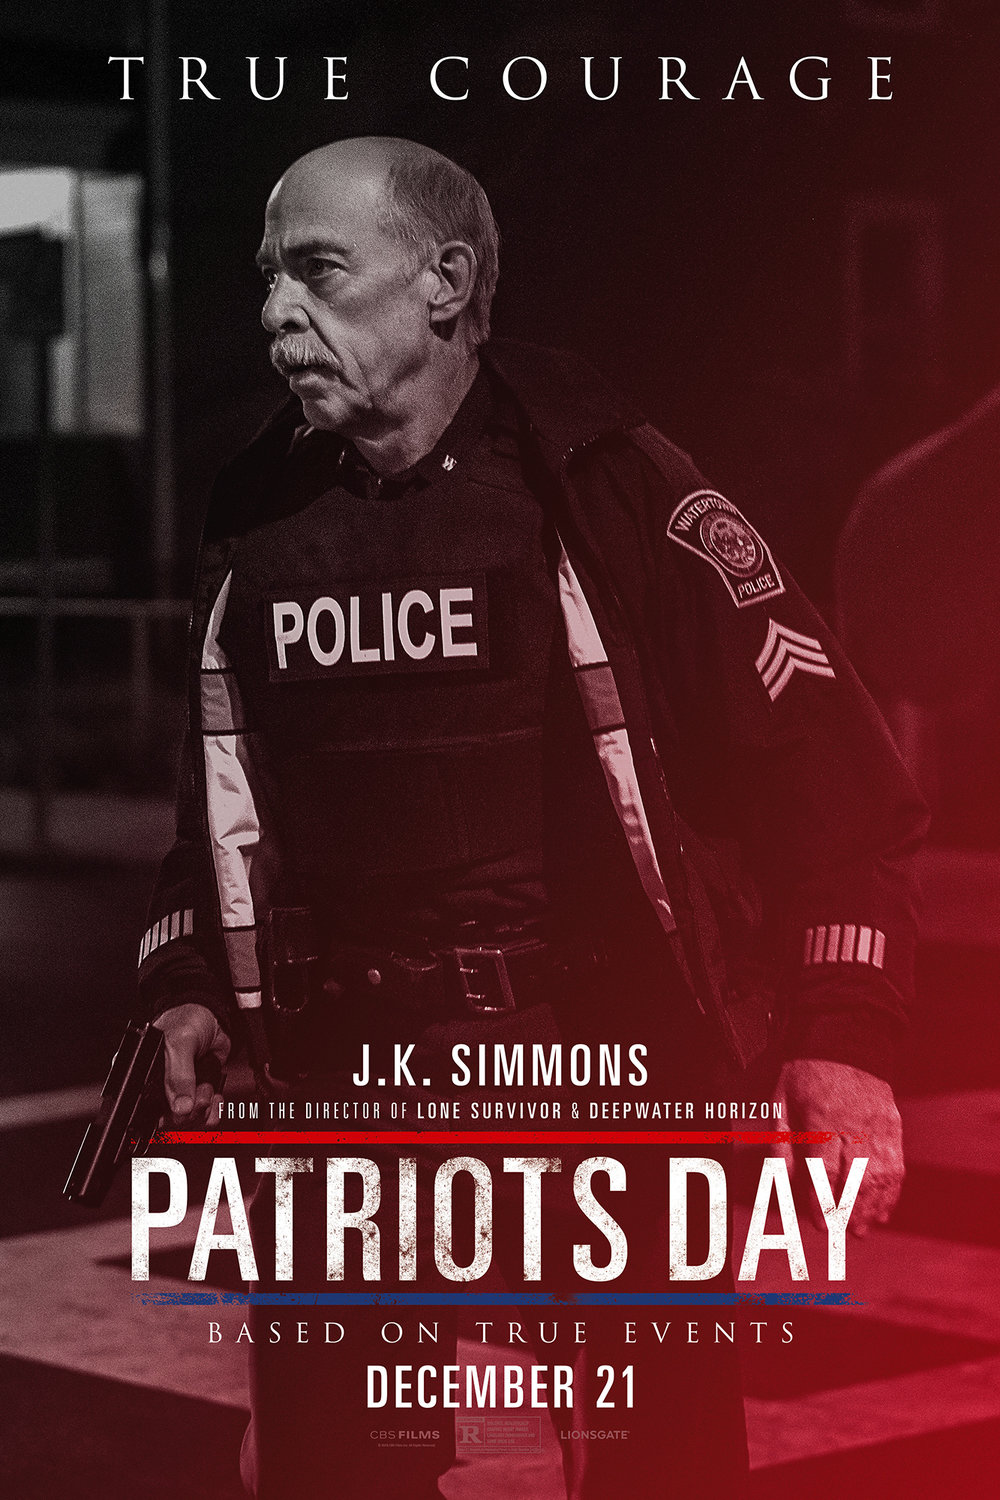 PatriotsDay_JKS_48x72_WildPostings_100dpi.jpg